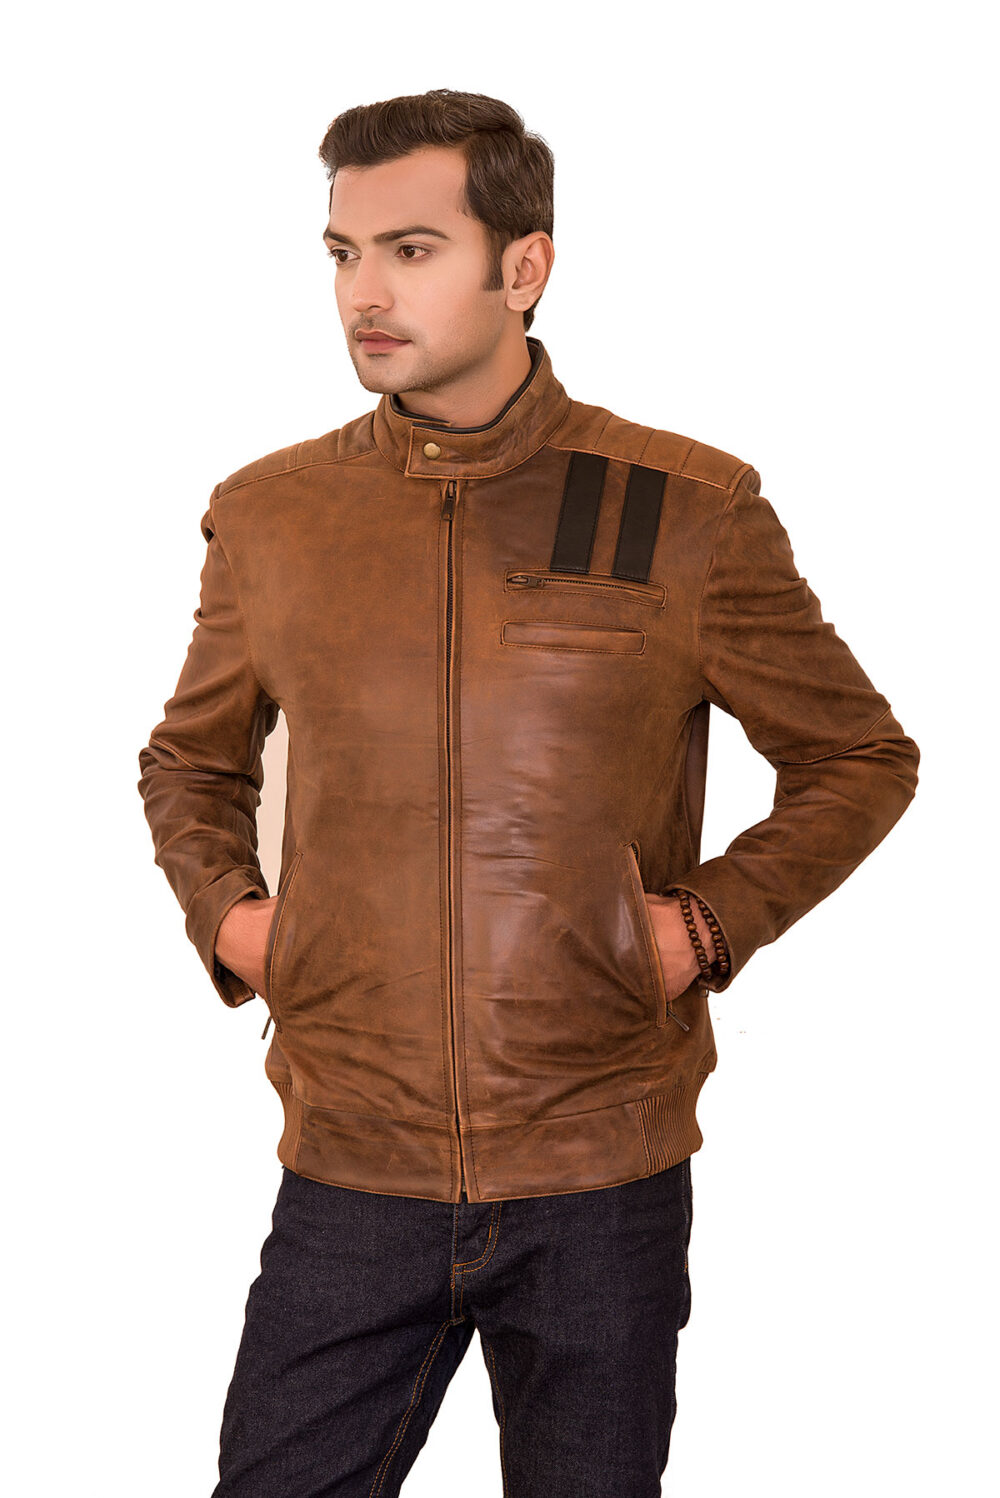 Lansing Vintage Brown Distressed Leather Jacket